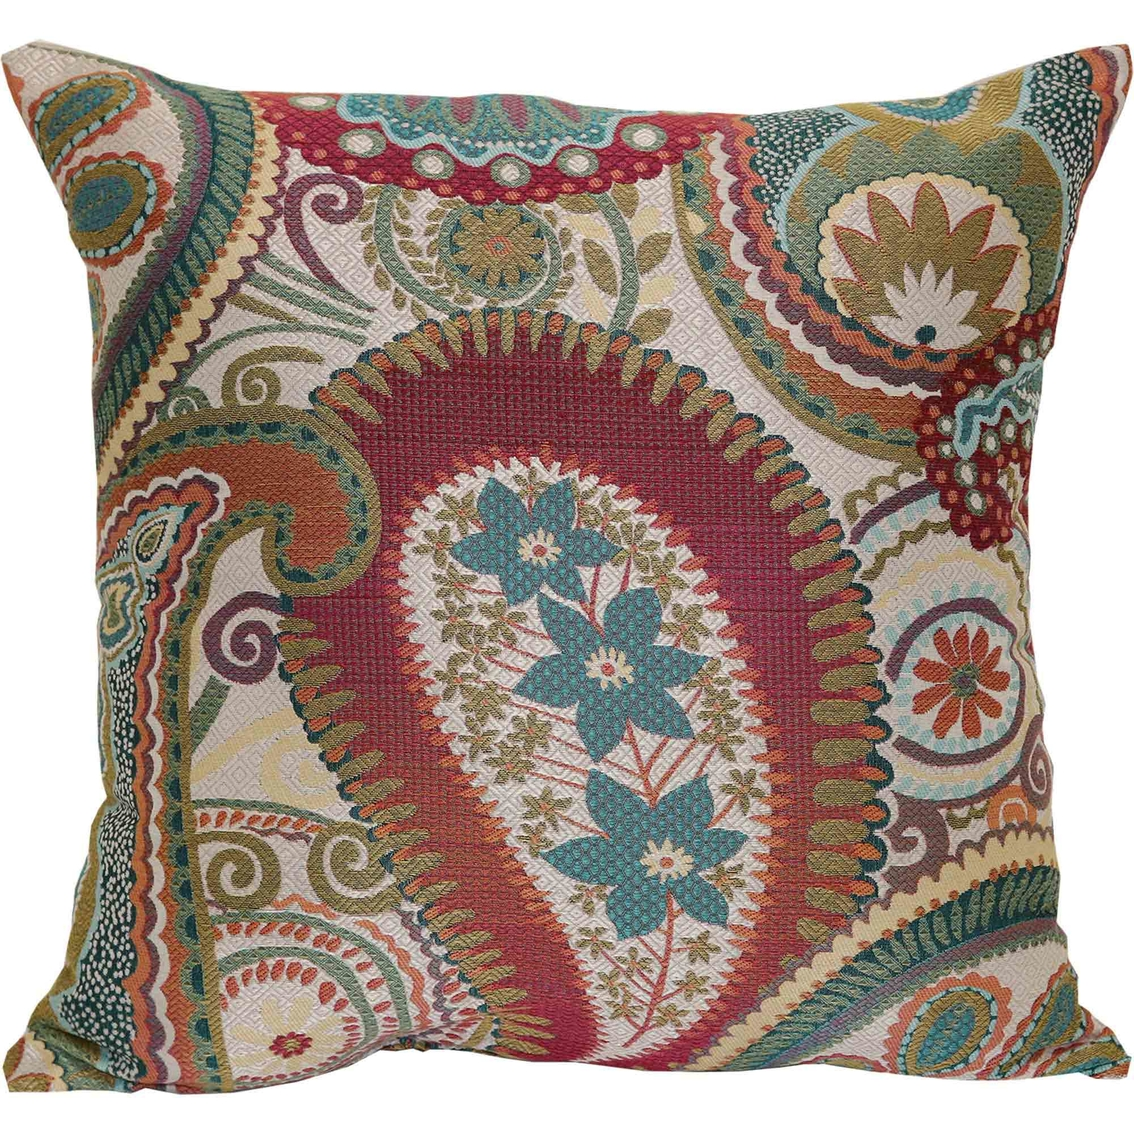 Brentwood Originals Outdoor Pillows